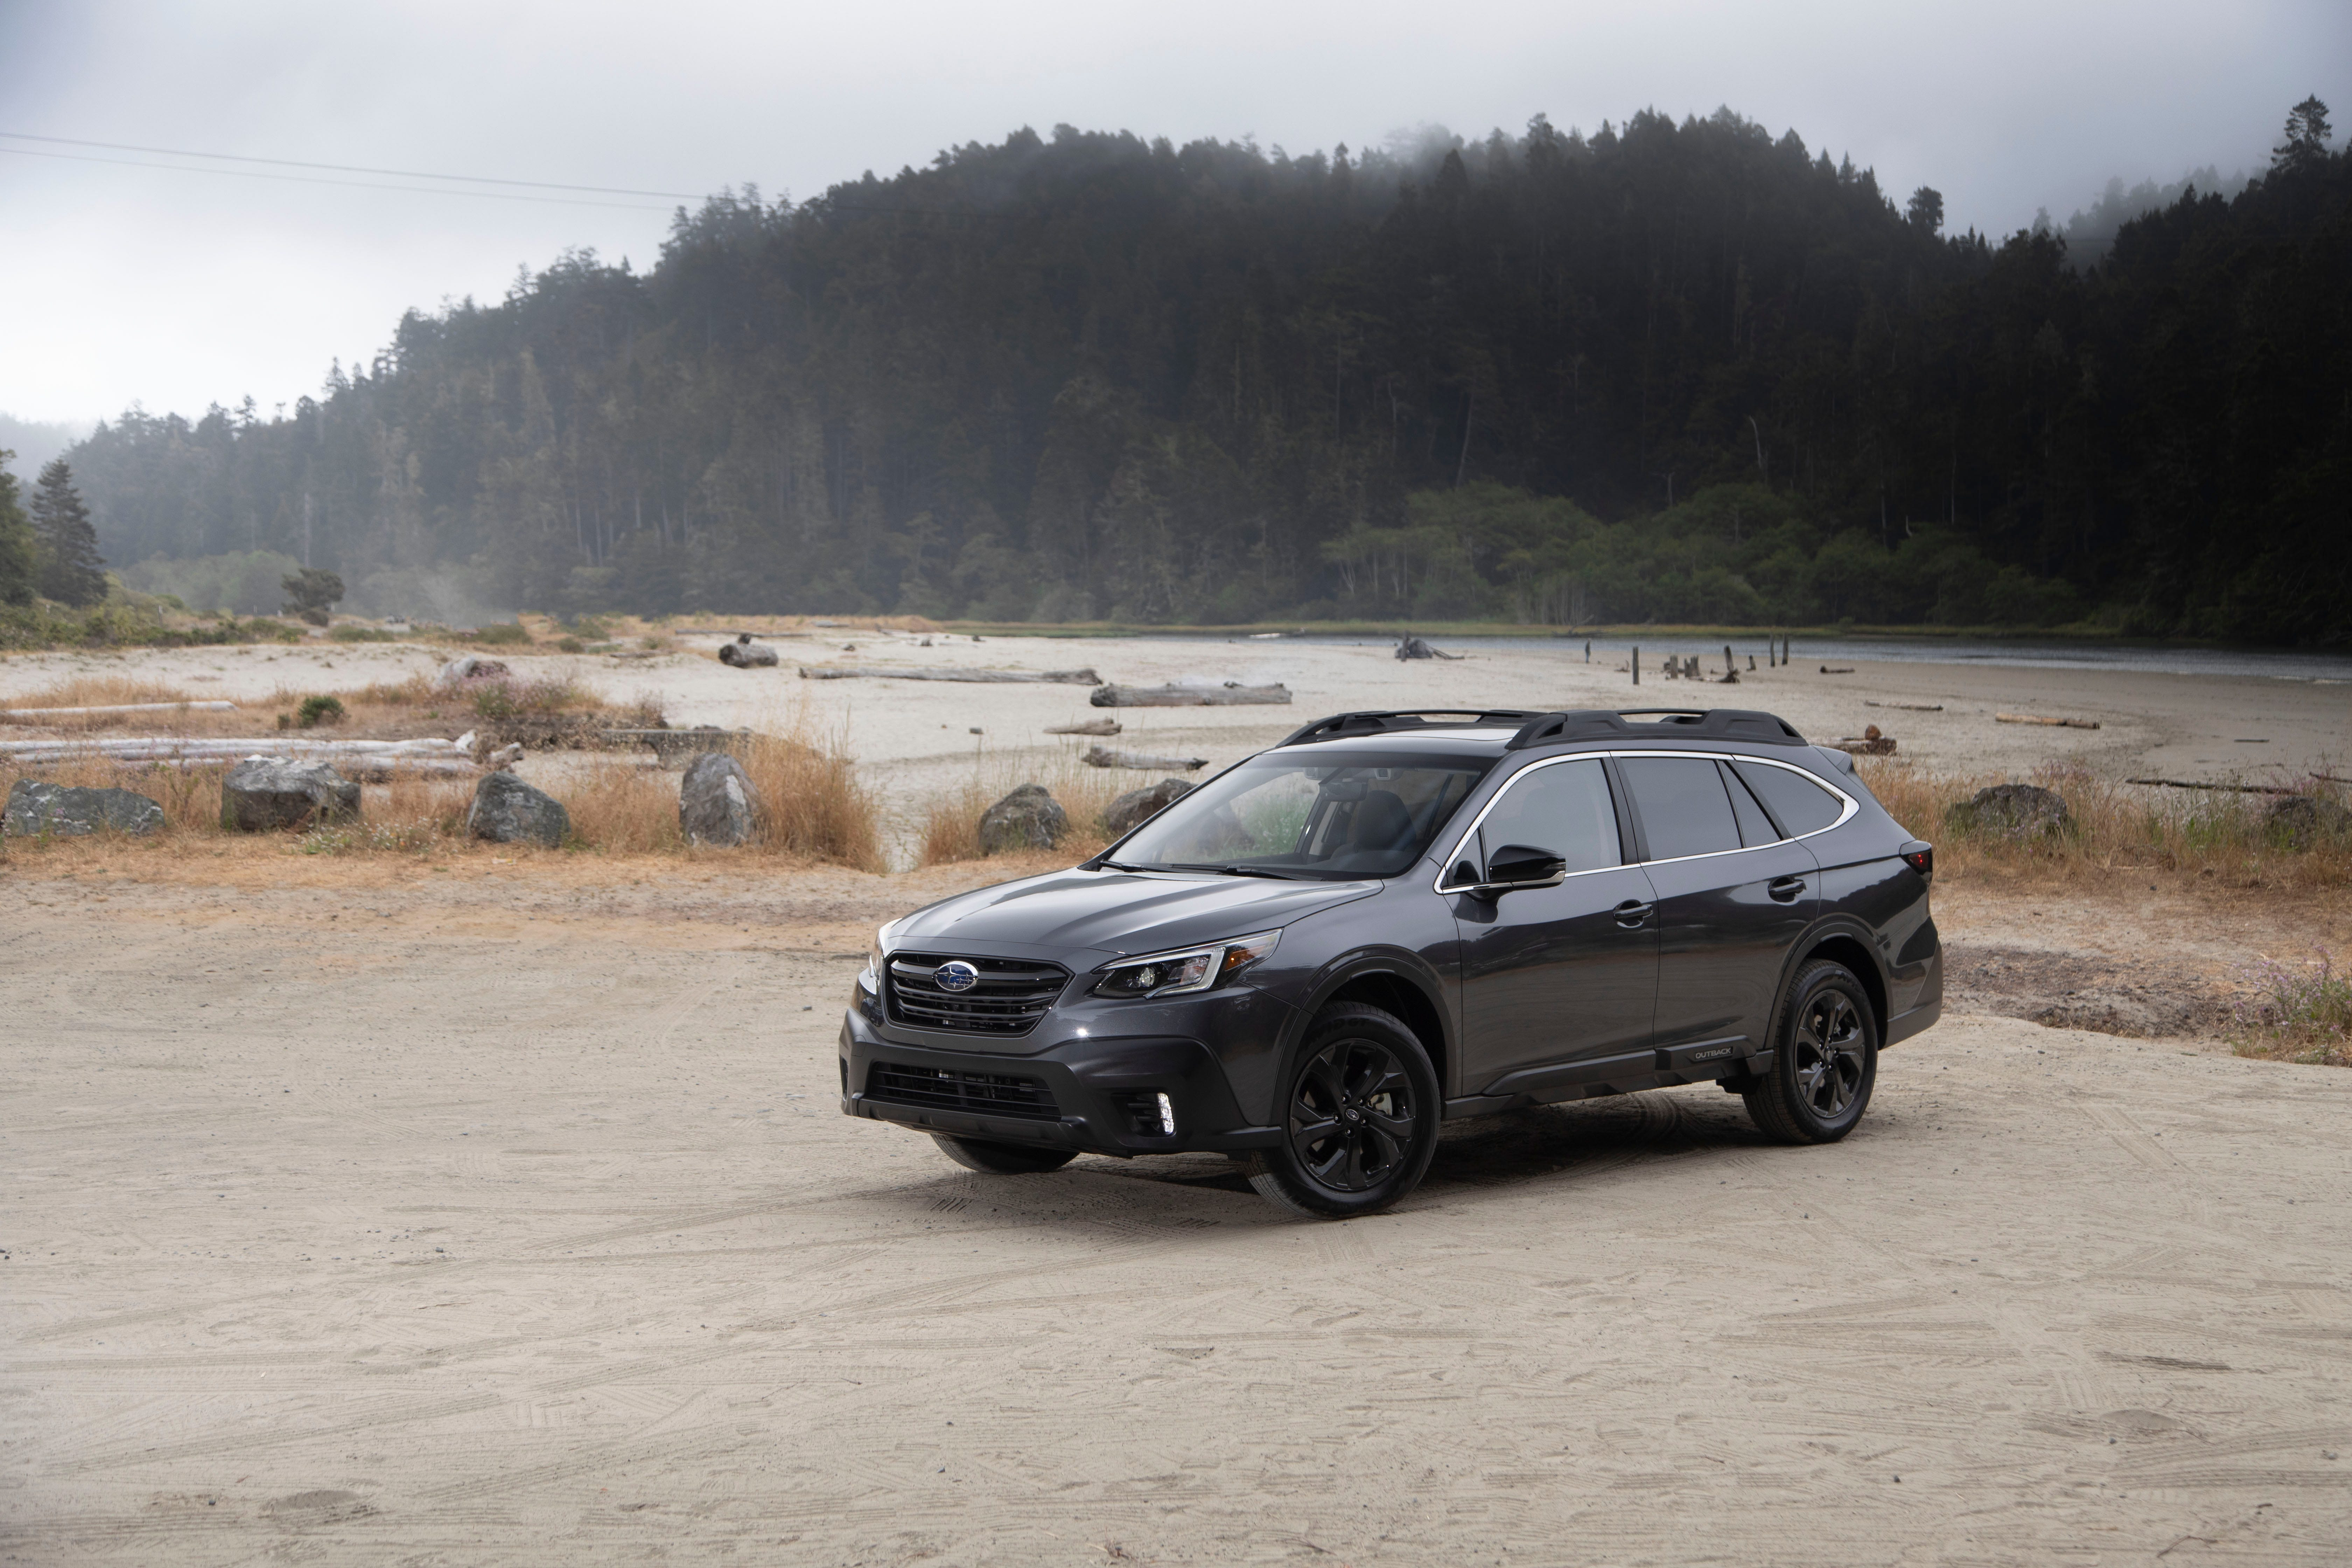 2020 Subaru Outback Onyx Model Excels On The Highway And Off Road